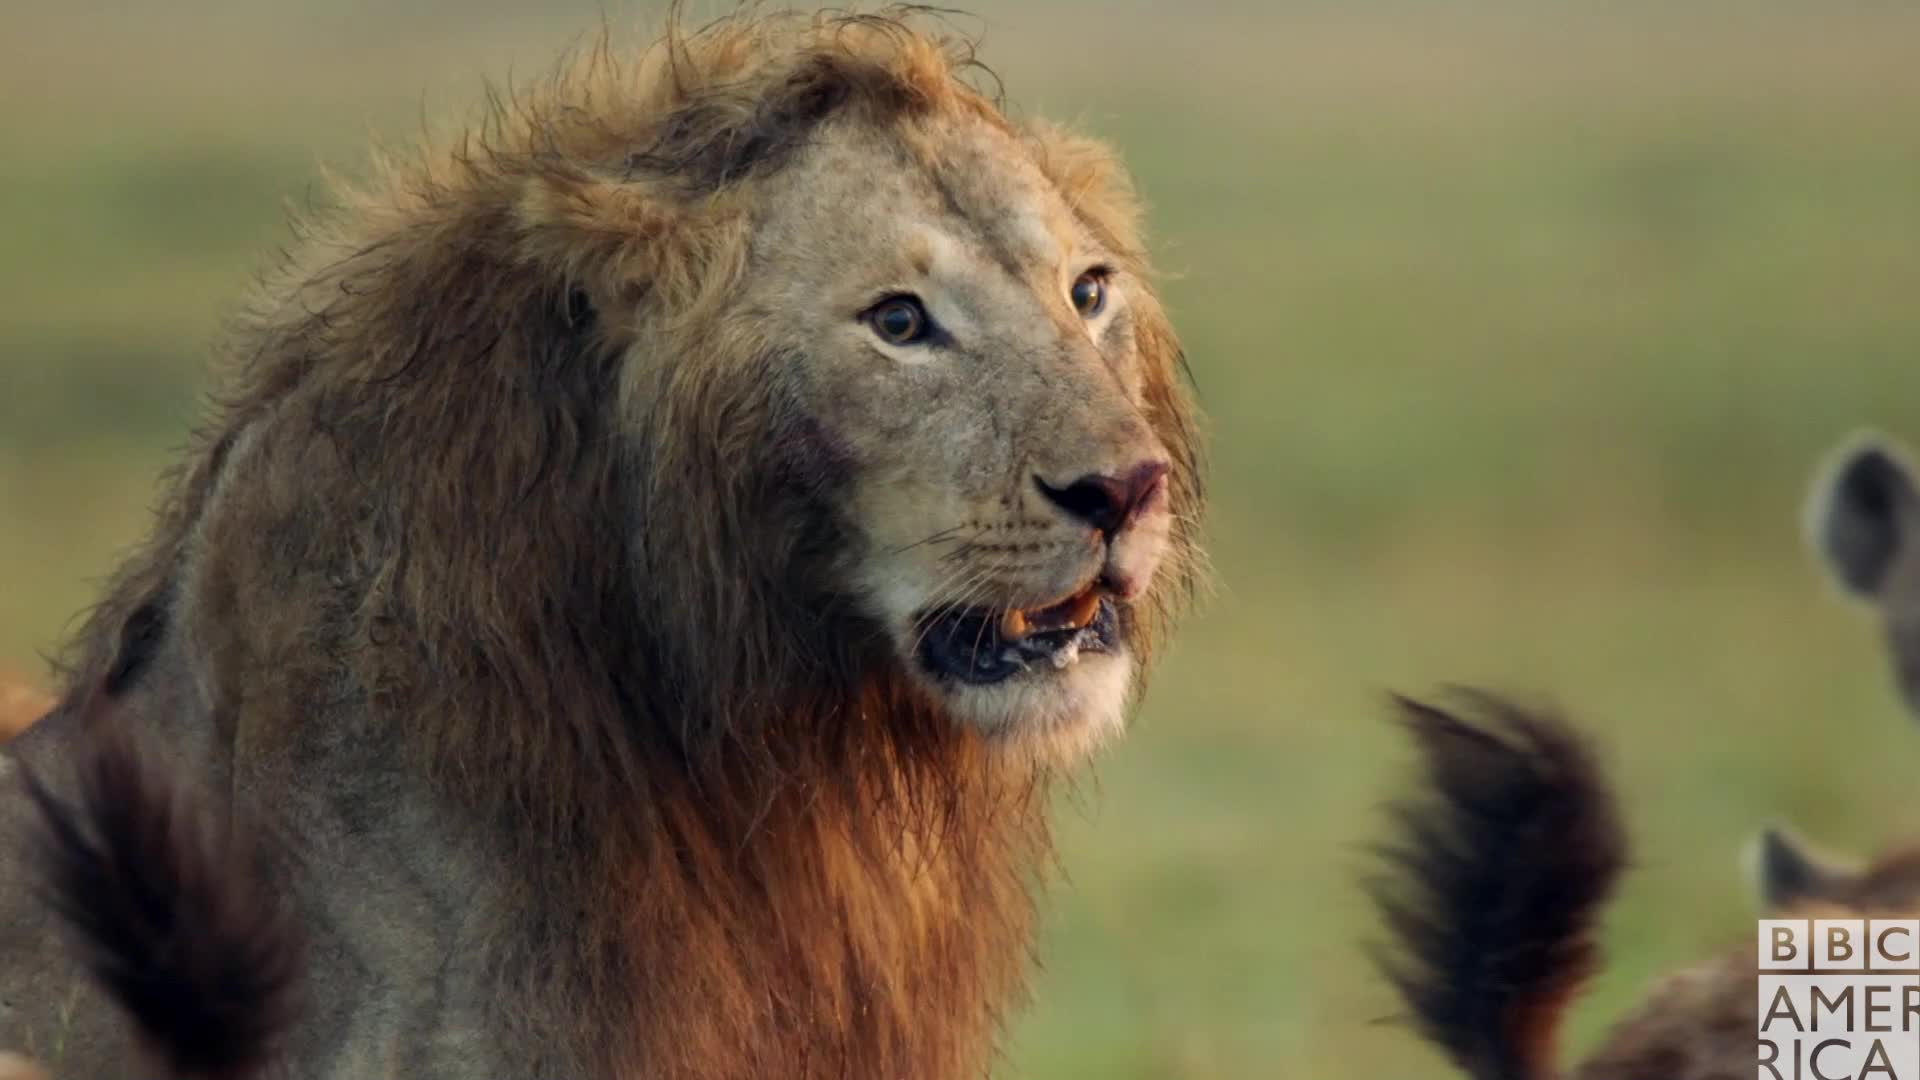 animal, animals, bbc america, bbc america dynasties, bbc america: dynasties, dynasties, lion, lions, oh no, scared, uh oh, worried, Dynasties Lion Scared GIFs